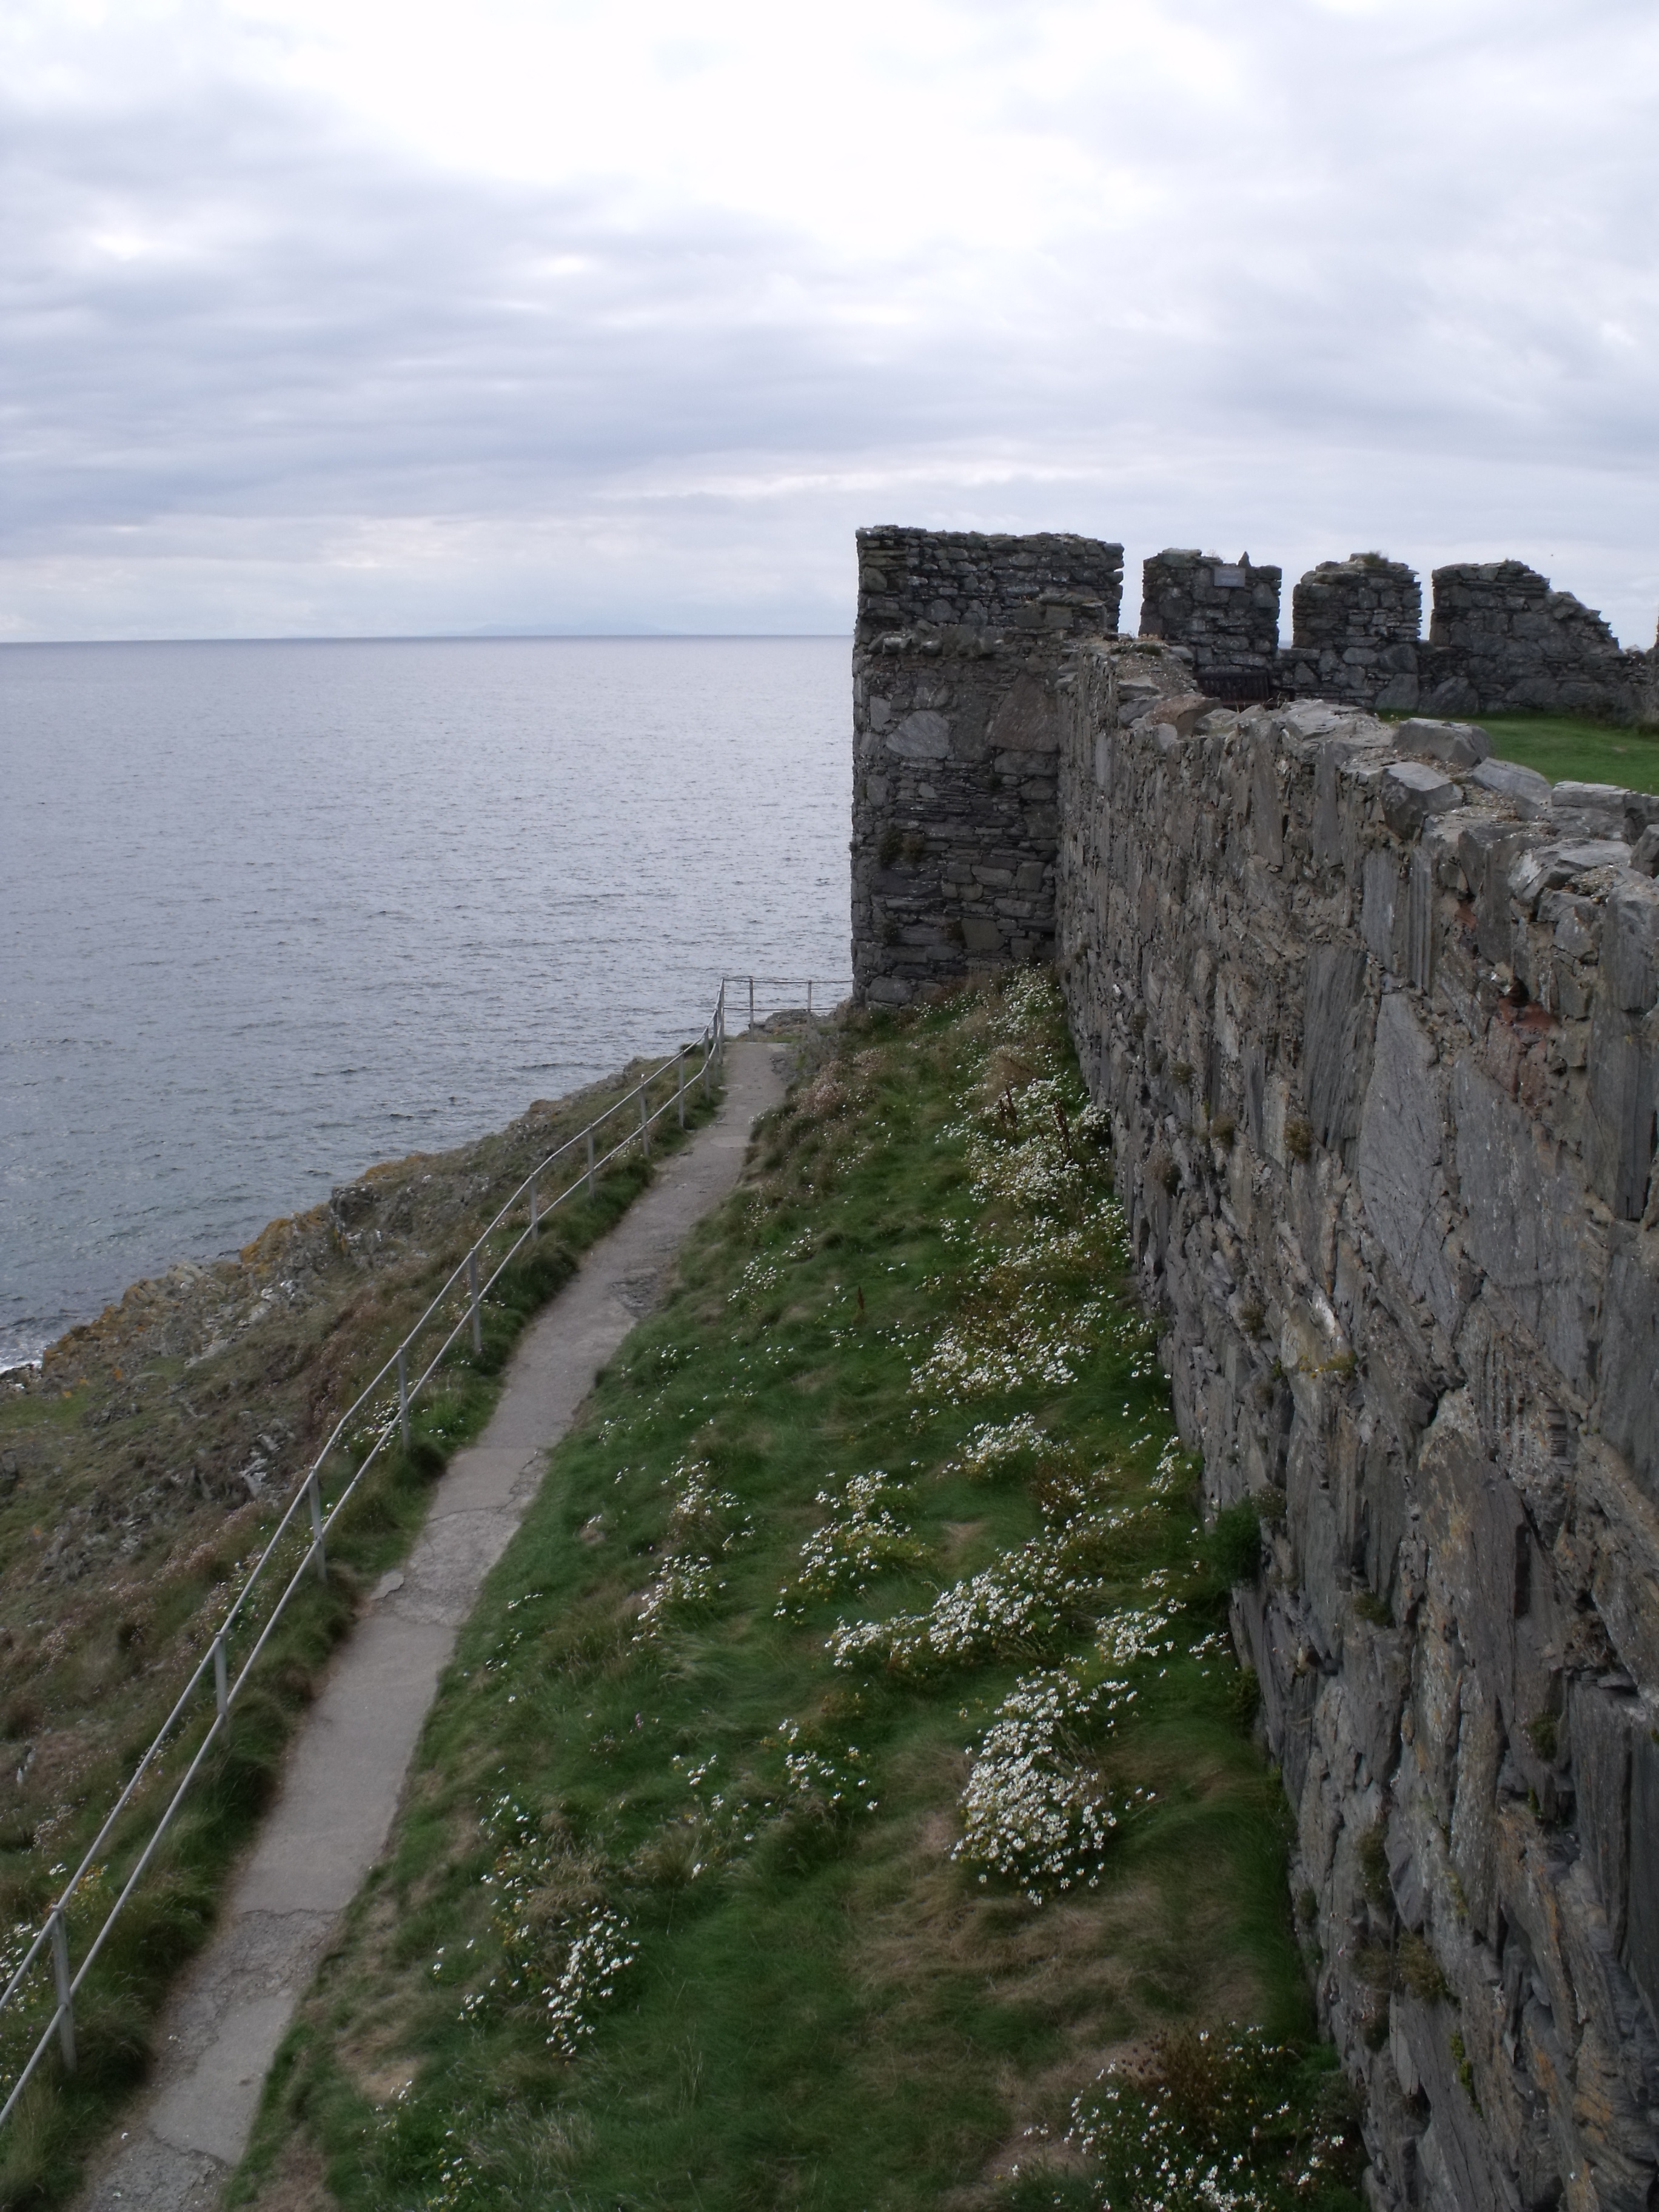 File:IOM Peel Castle Rampart by Malost.JPG - Wikimedia Commons